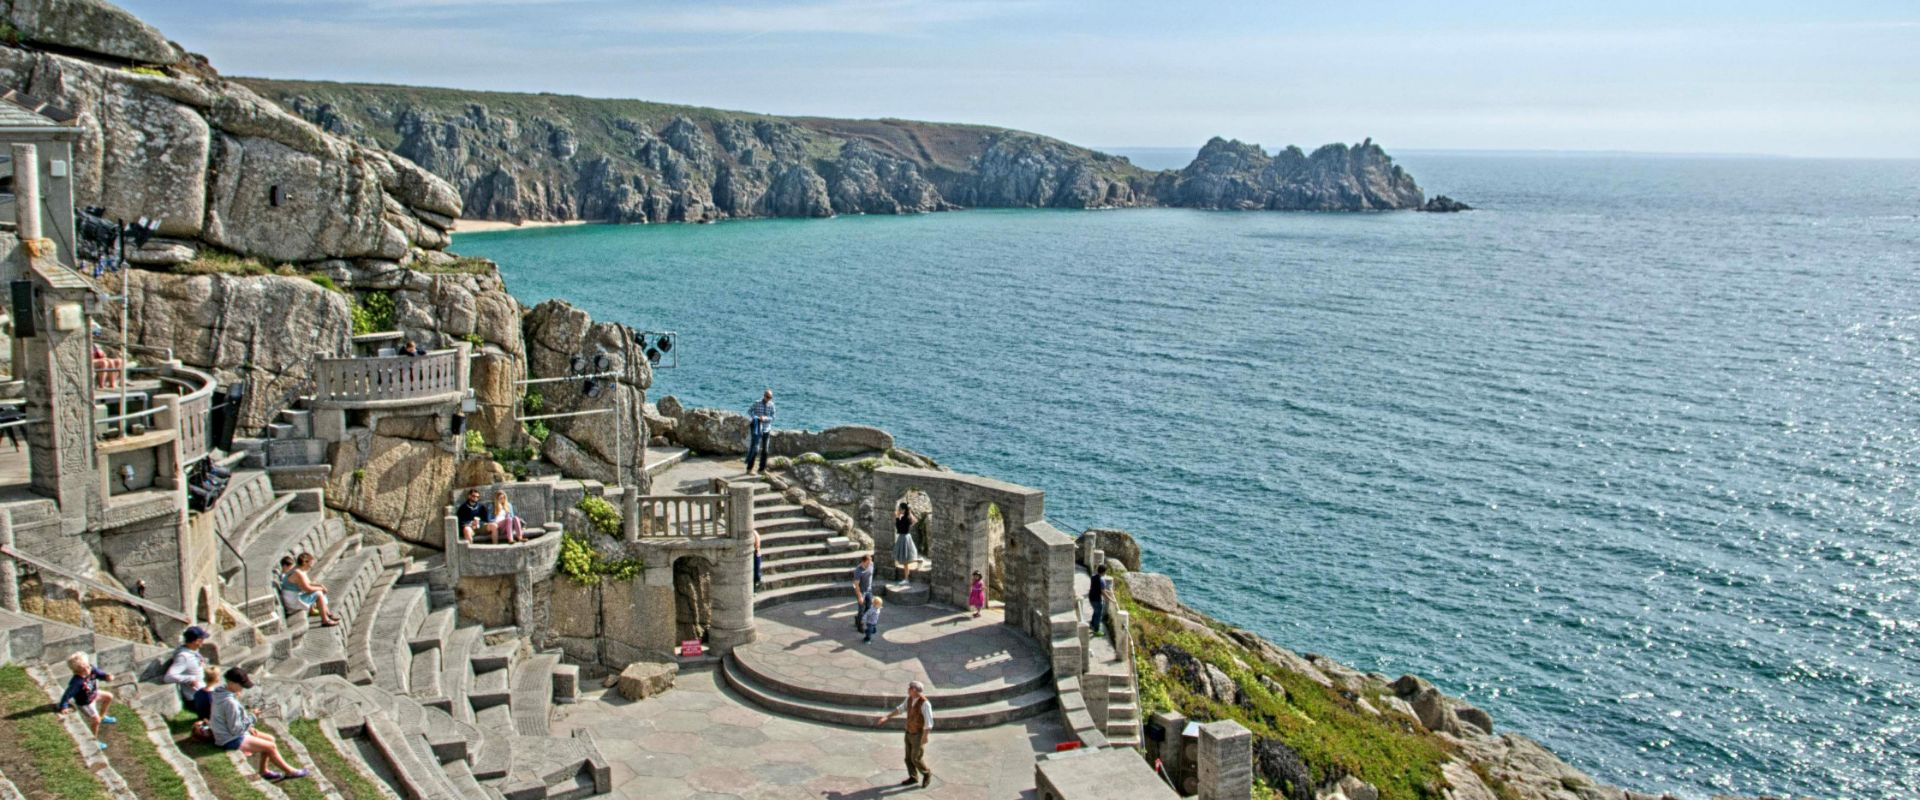 The Minack Theatre in Cornwall